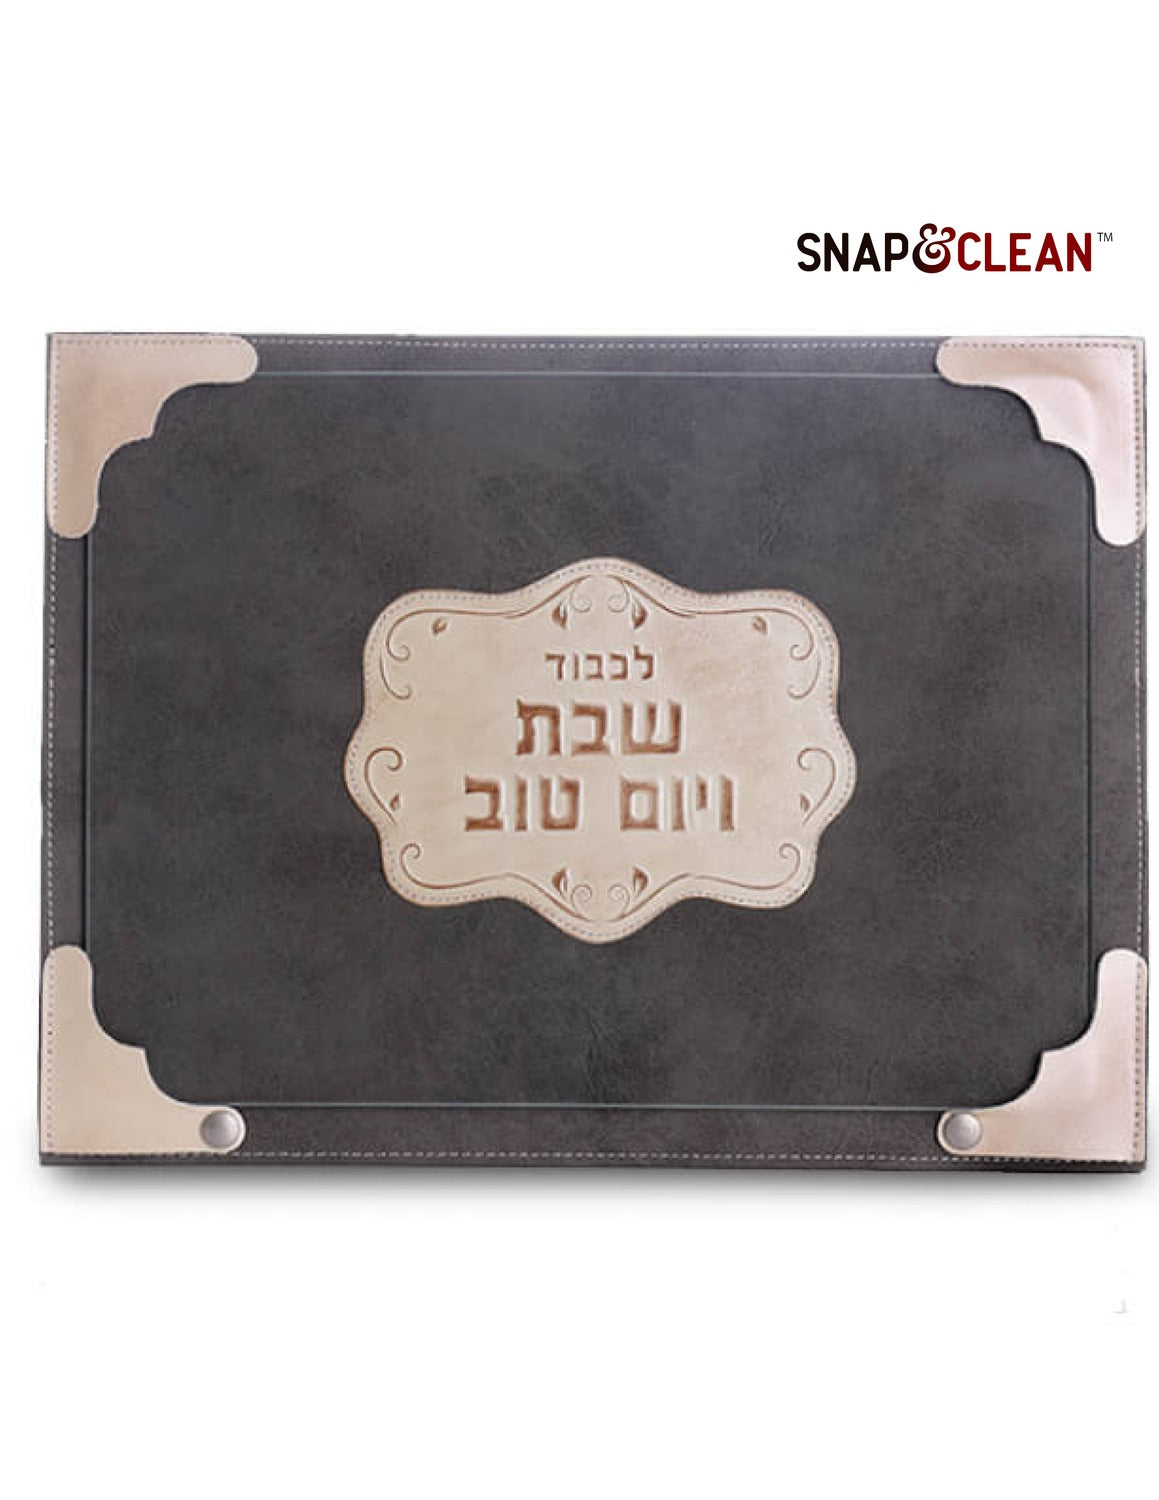 Challah Board With Snaps & Glass - Leather Decoration - Silver 12x16